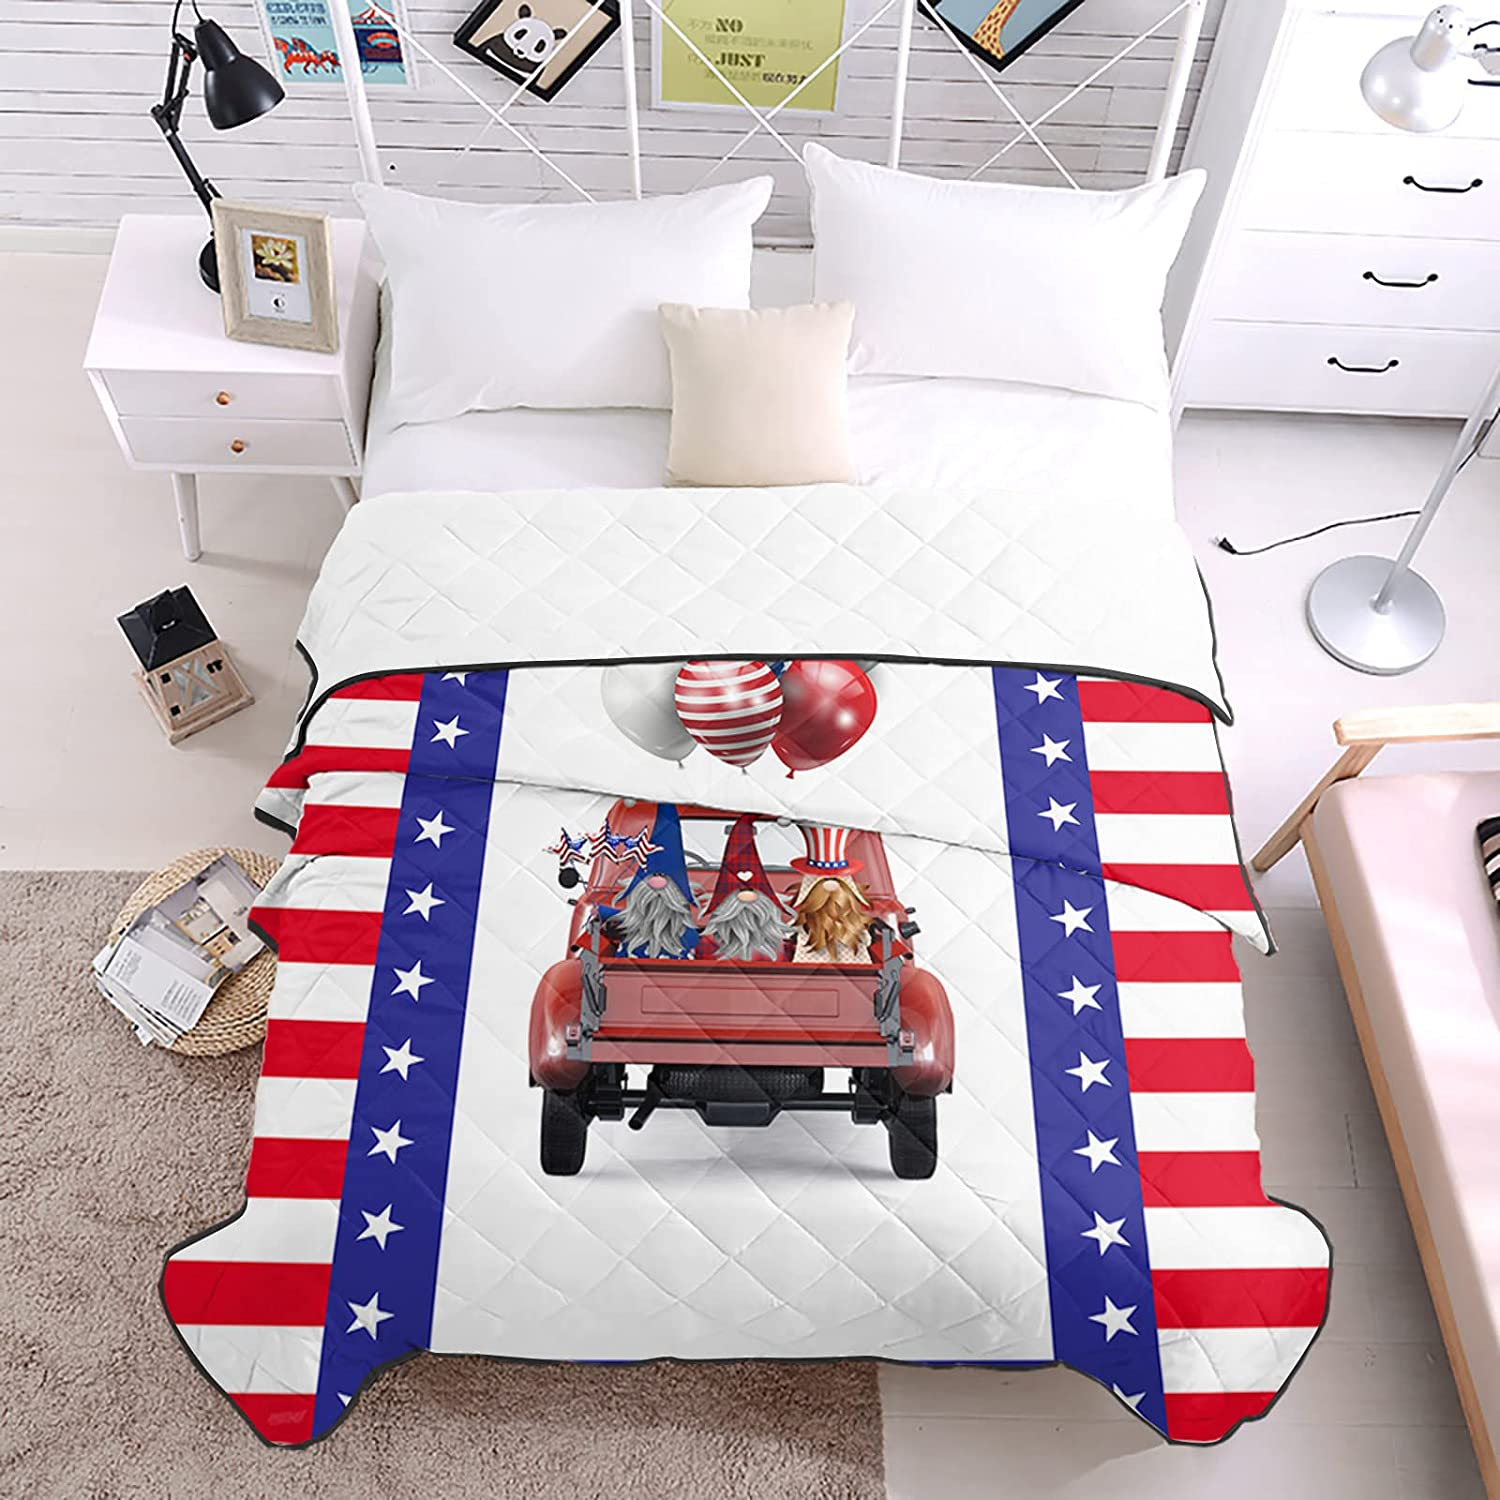 DecorLovee Bedding Duvets Now on sale Fourth of Super intense SALE All July Red-White Stripes